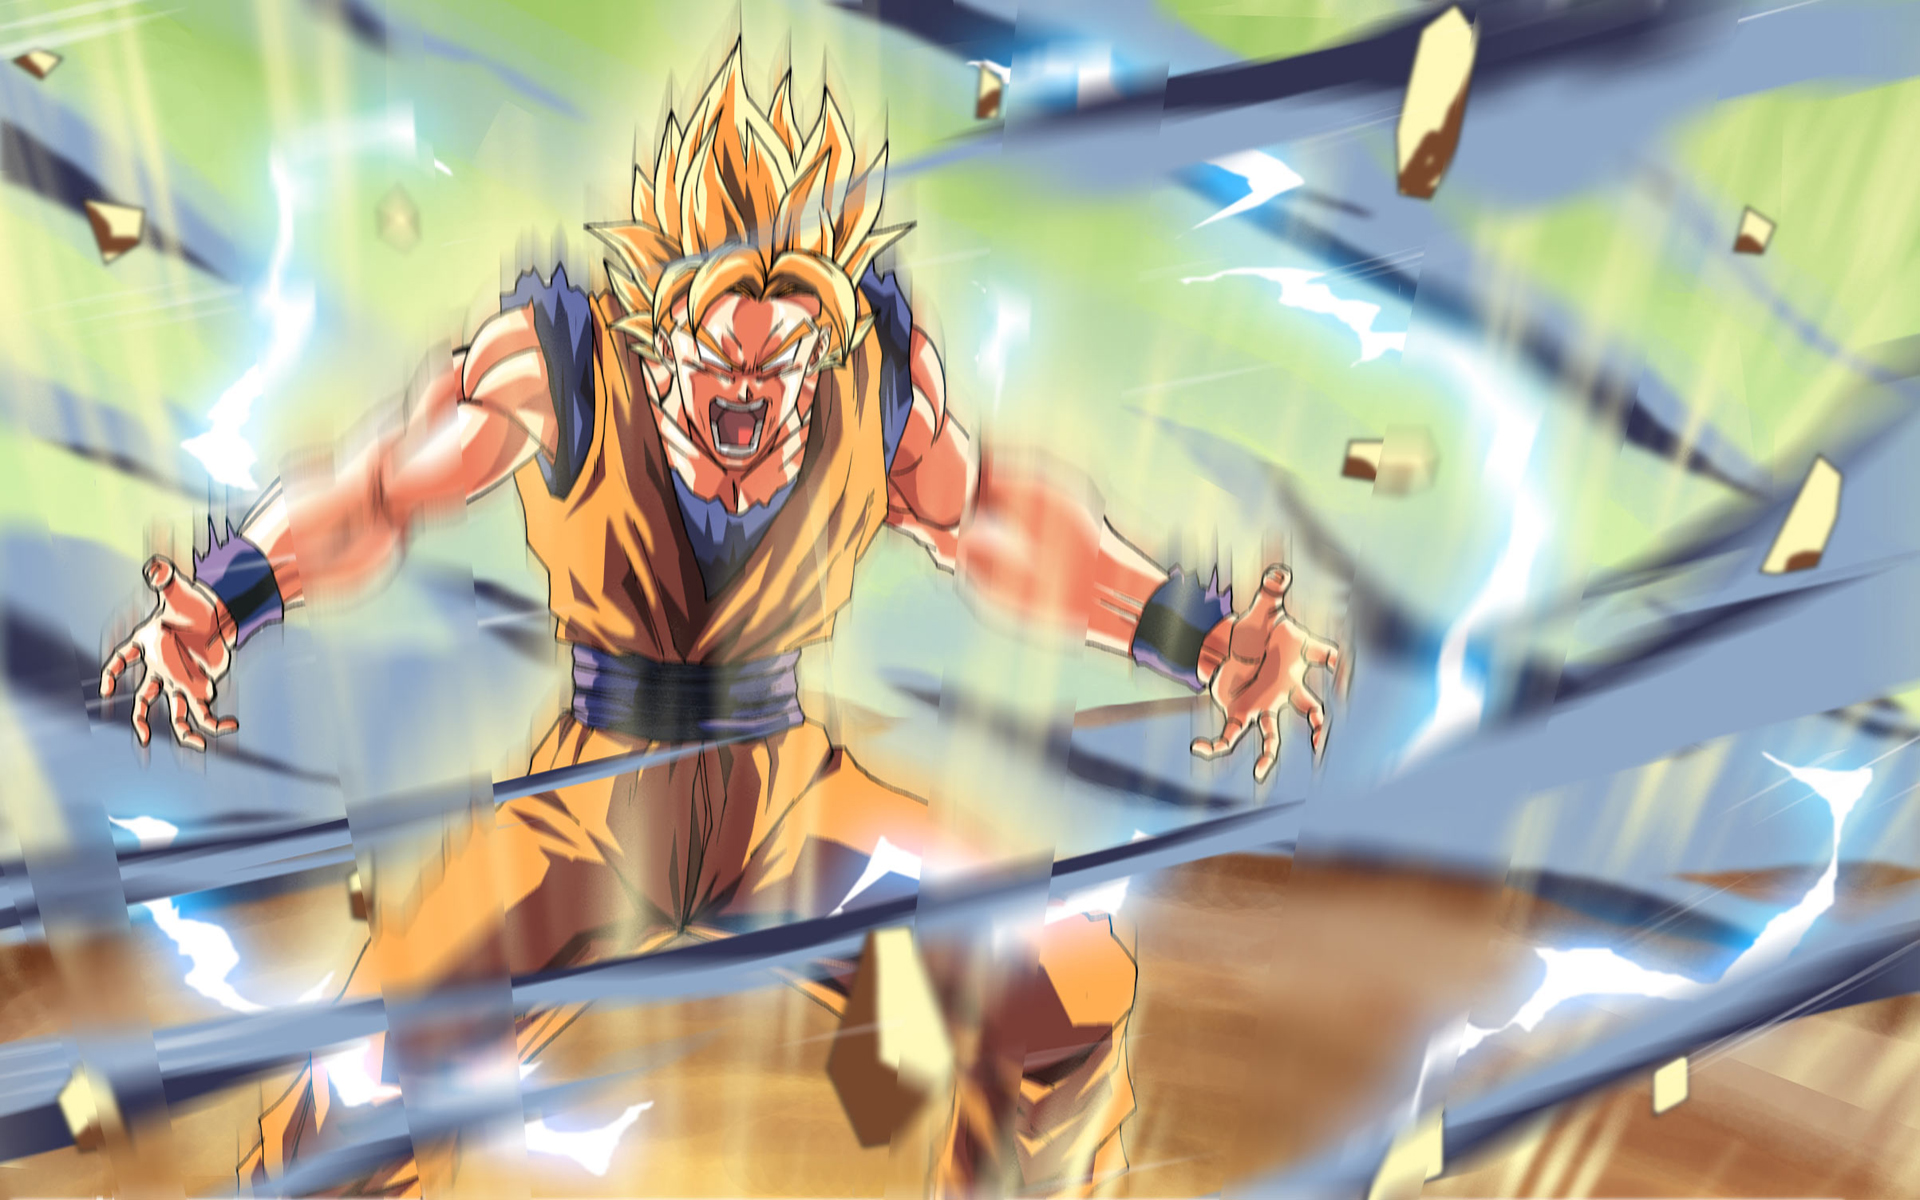 Dragon Ball Z Res: 1920x1200 / Size:978kb. Views: 298226